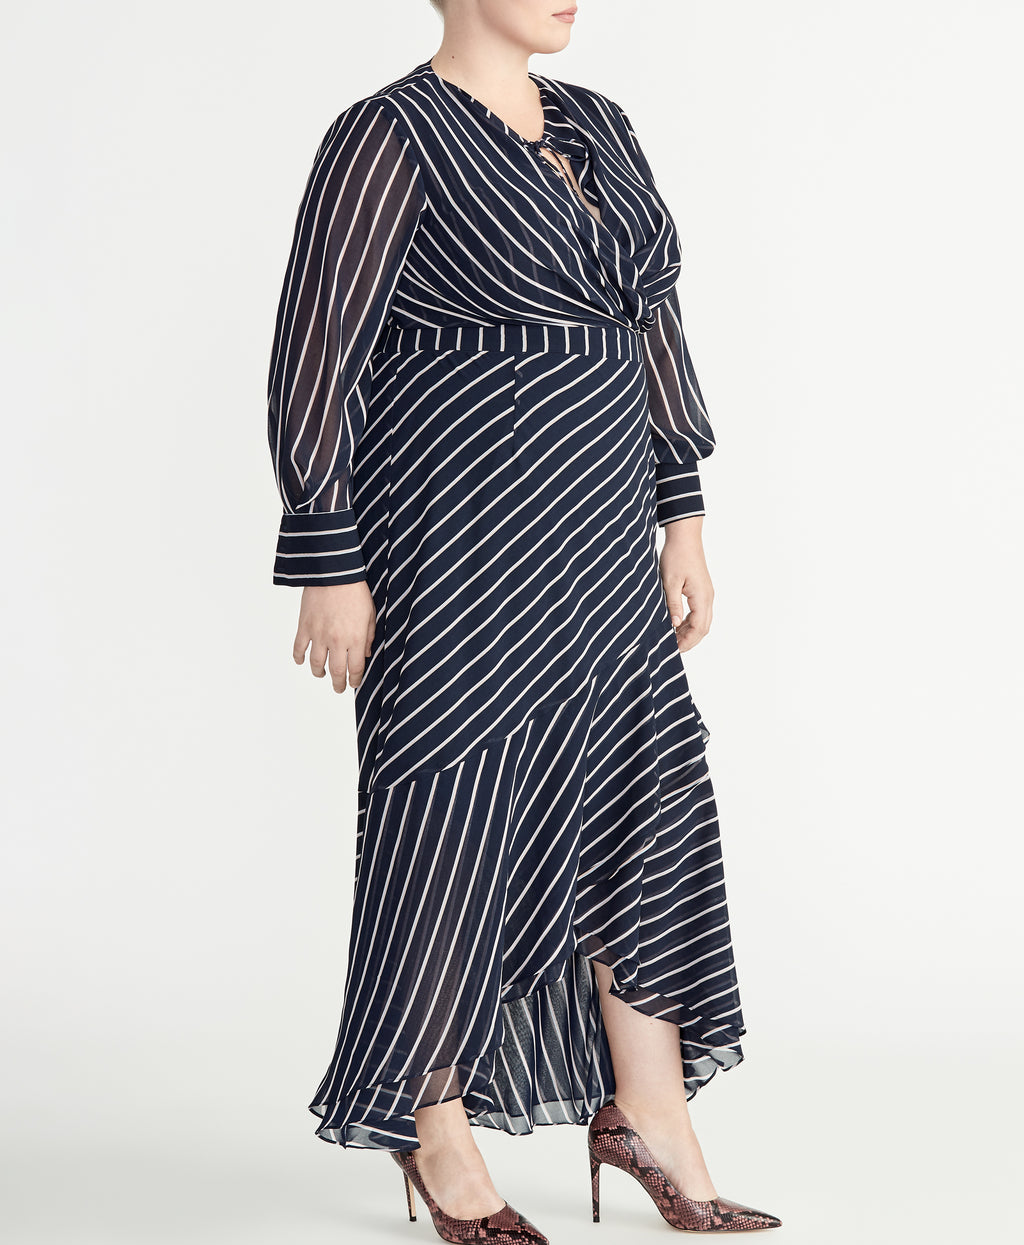 STRIPE PRINT DRESS | STRIPE PRINT DRESS